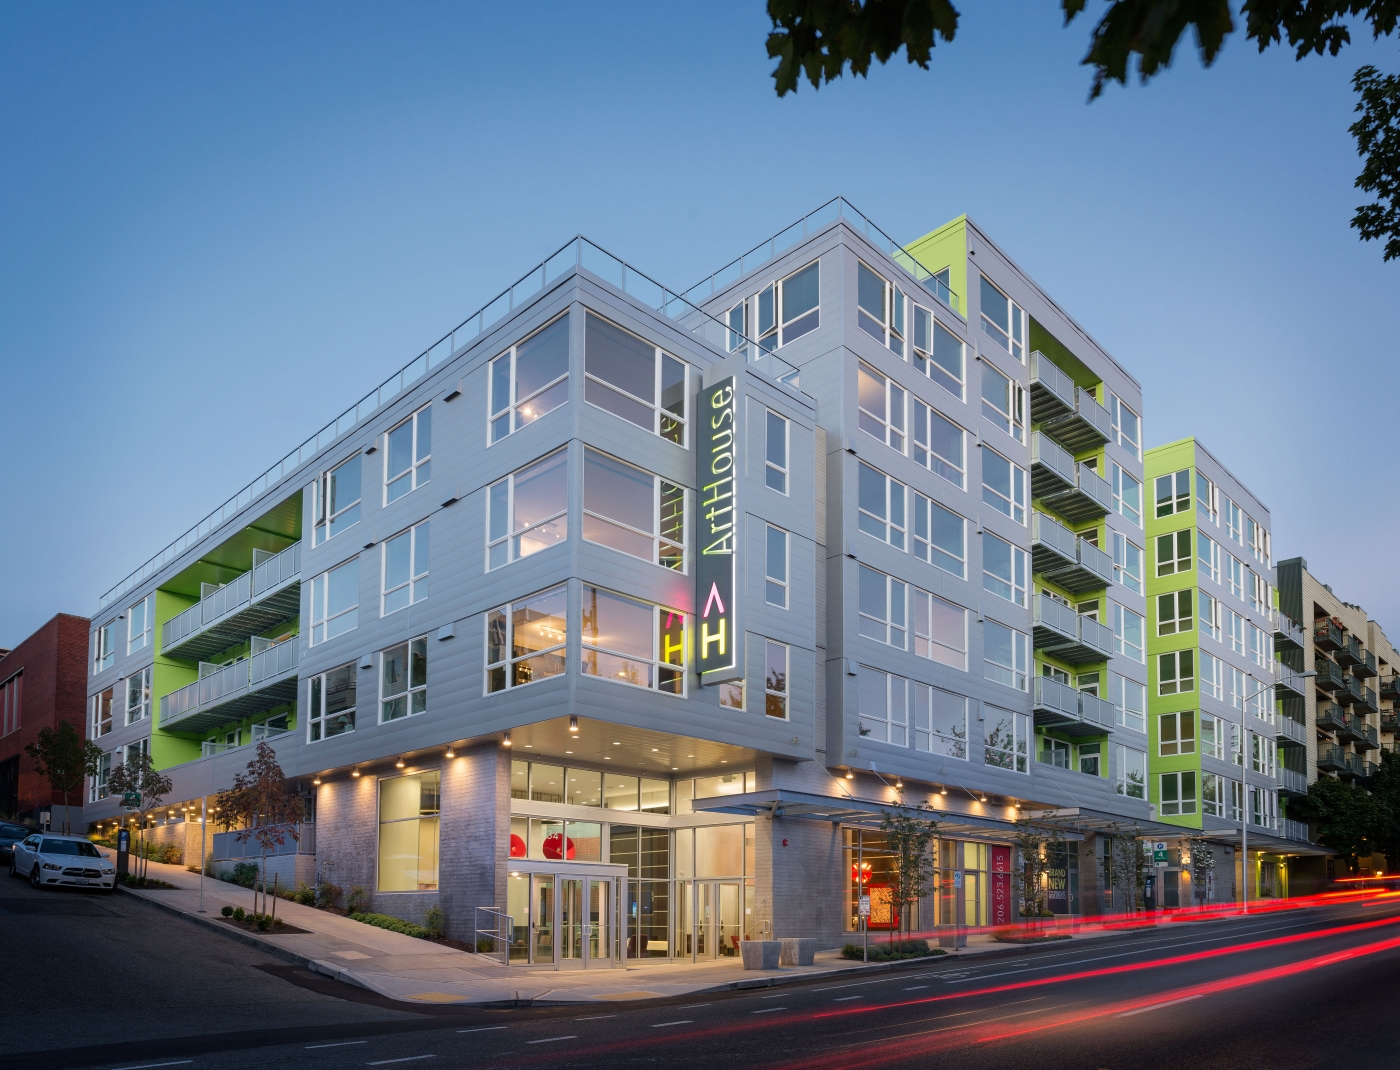 Seattle Djc Com Local Business News And Data Real Estate Arthouse Opens Near Art Institute